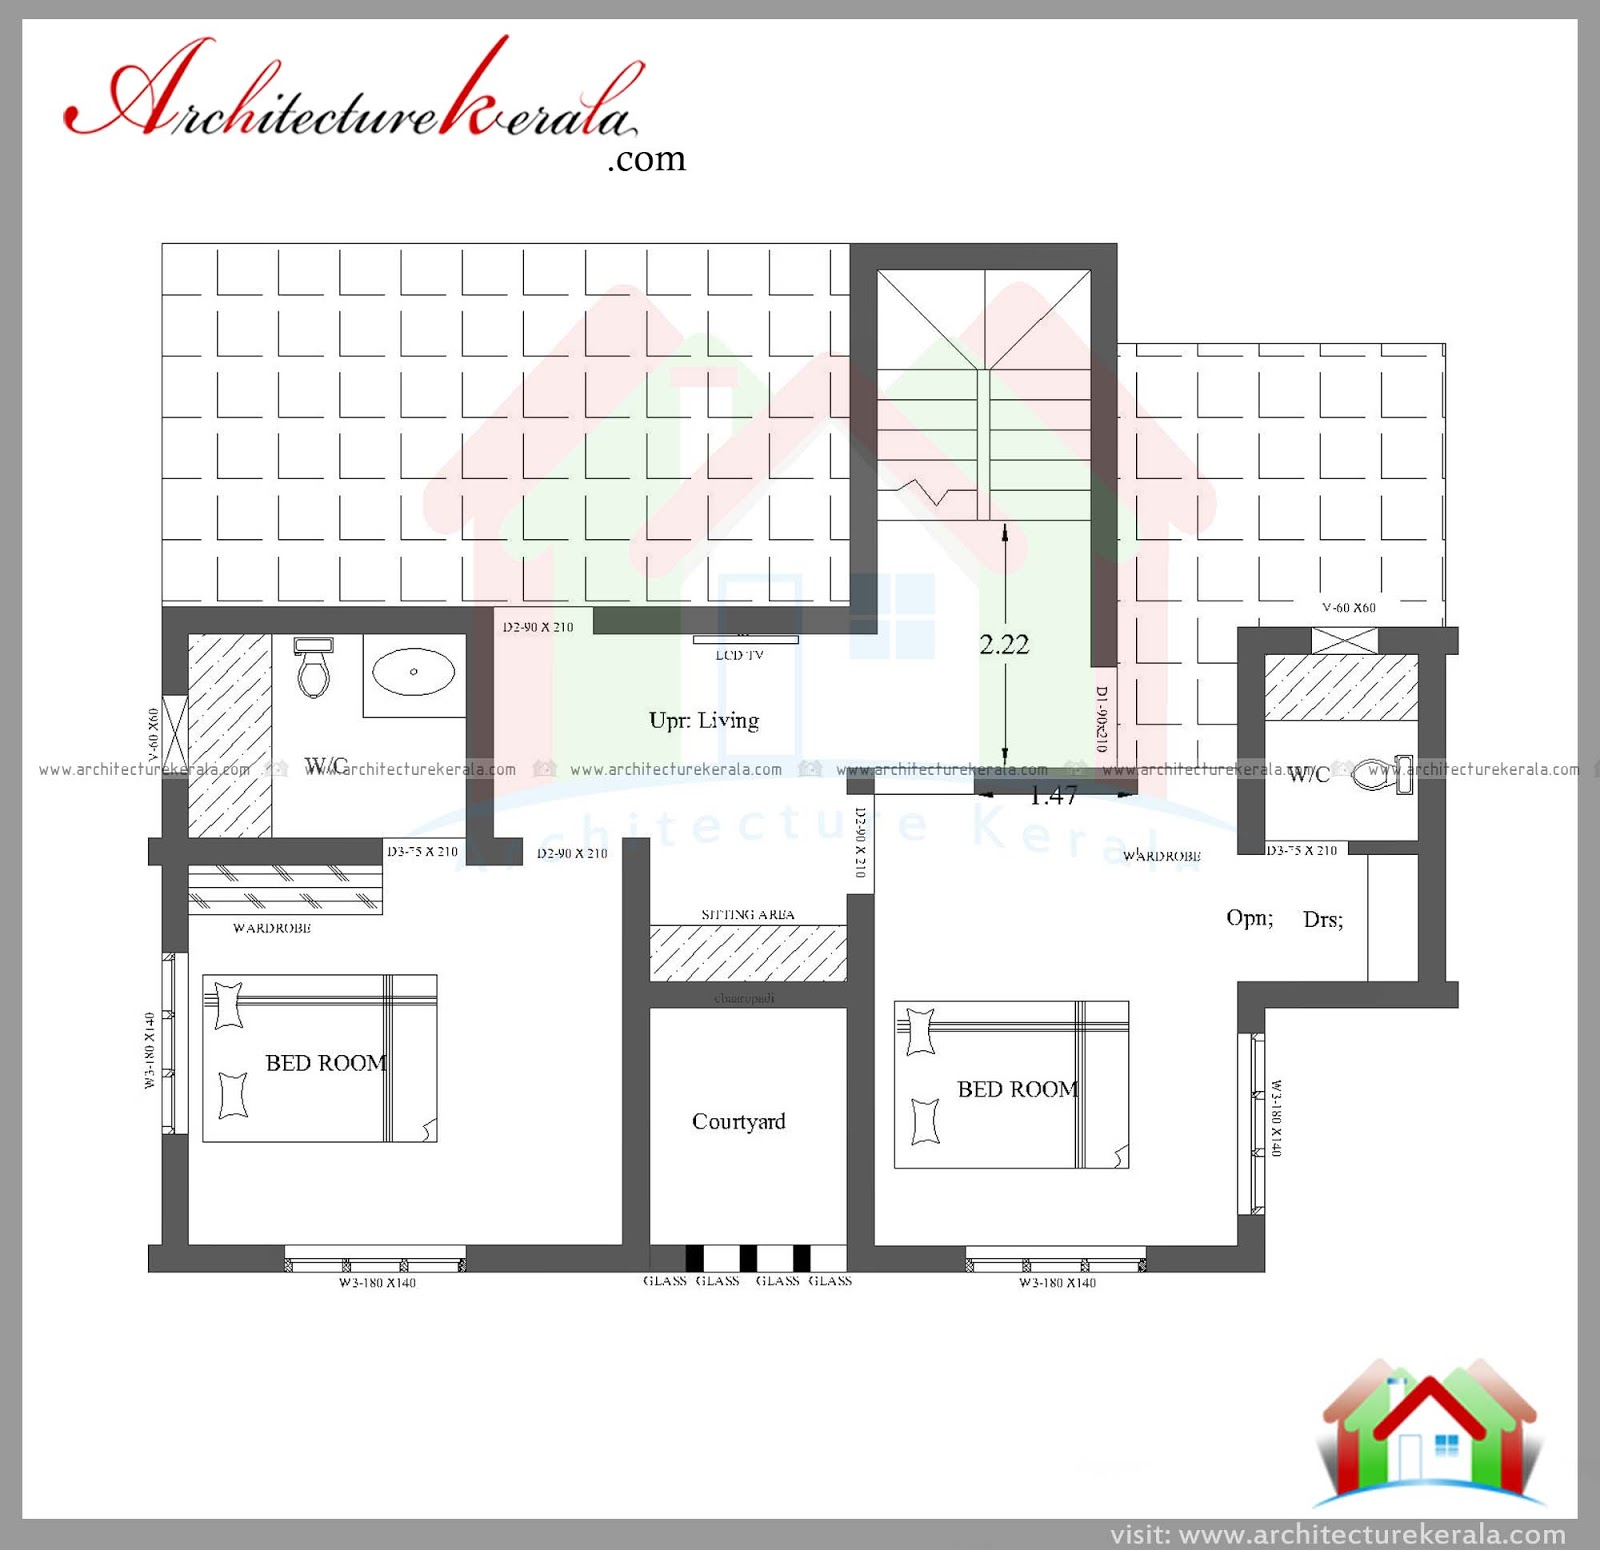 Three bedroom house plan and elevation in 2000 sq ft for Architectural plans